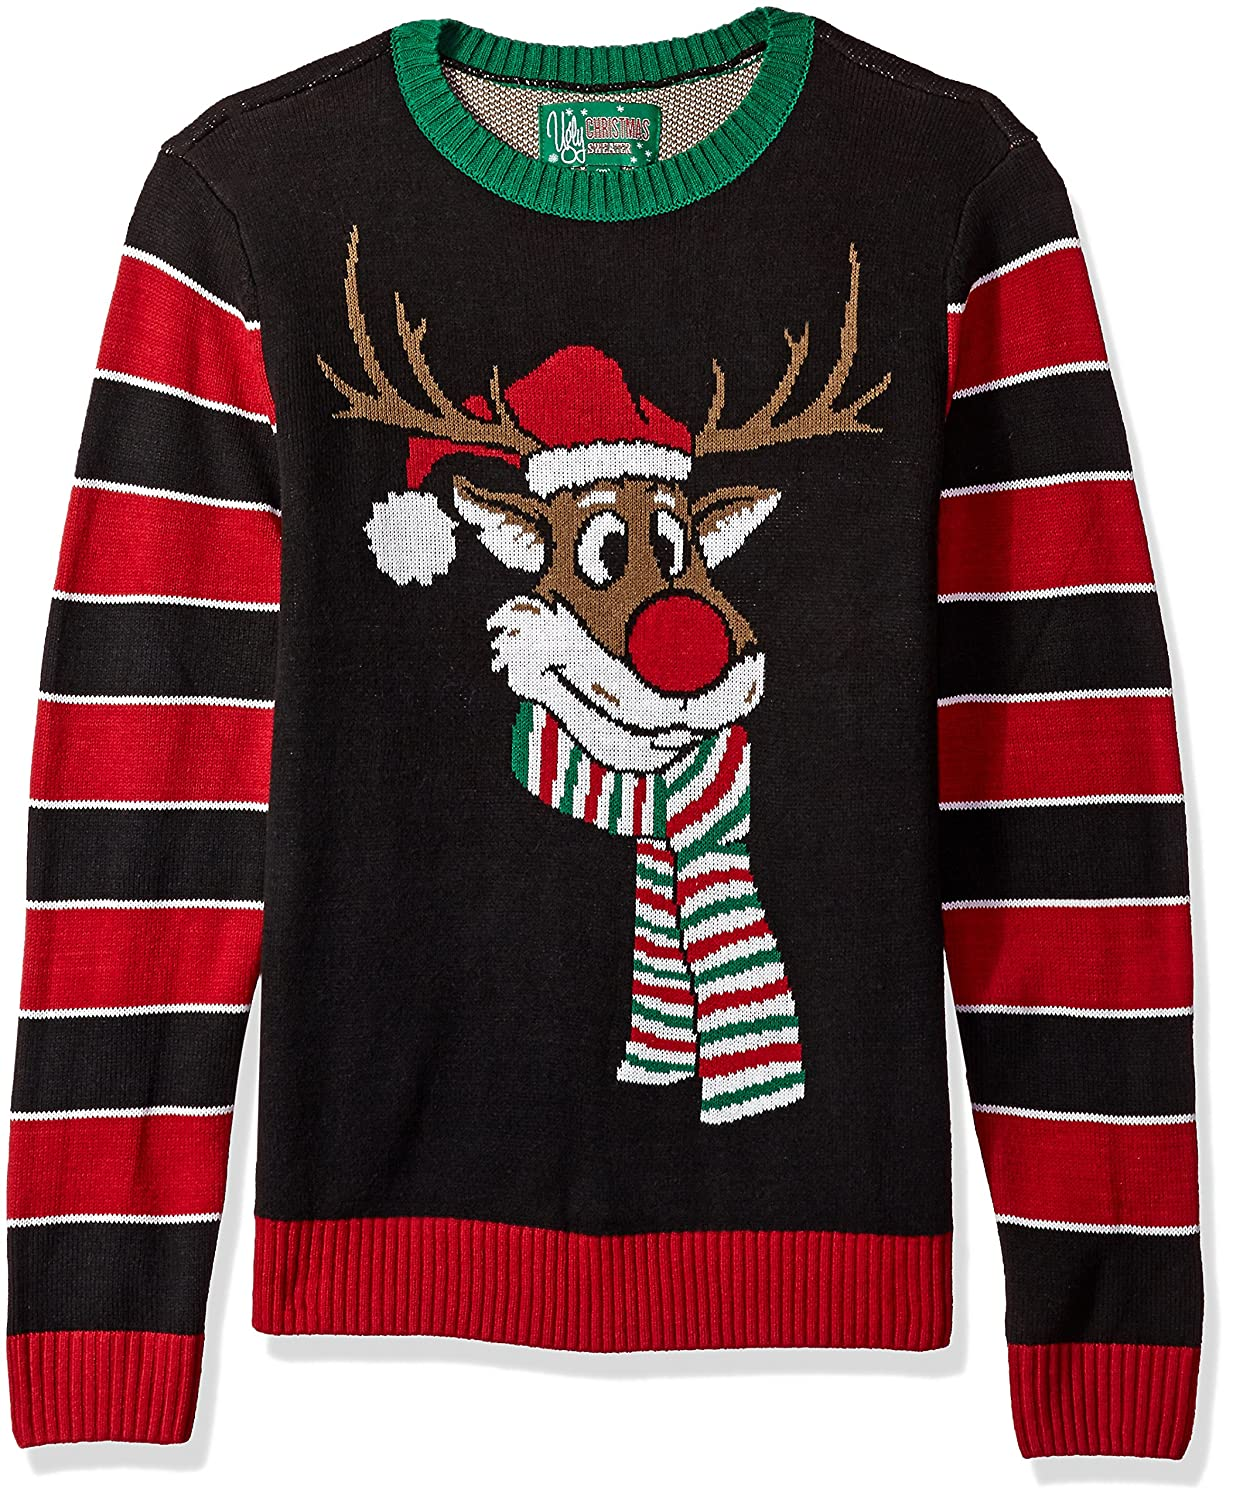 Ugly Christmas Sweater Company Men's Reindeer Poopermints Sweater The Ugly Christmas Sweater Kit SYP7-1830BAMZ